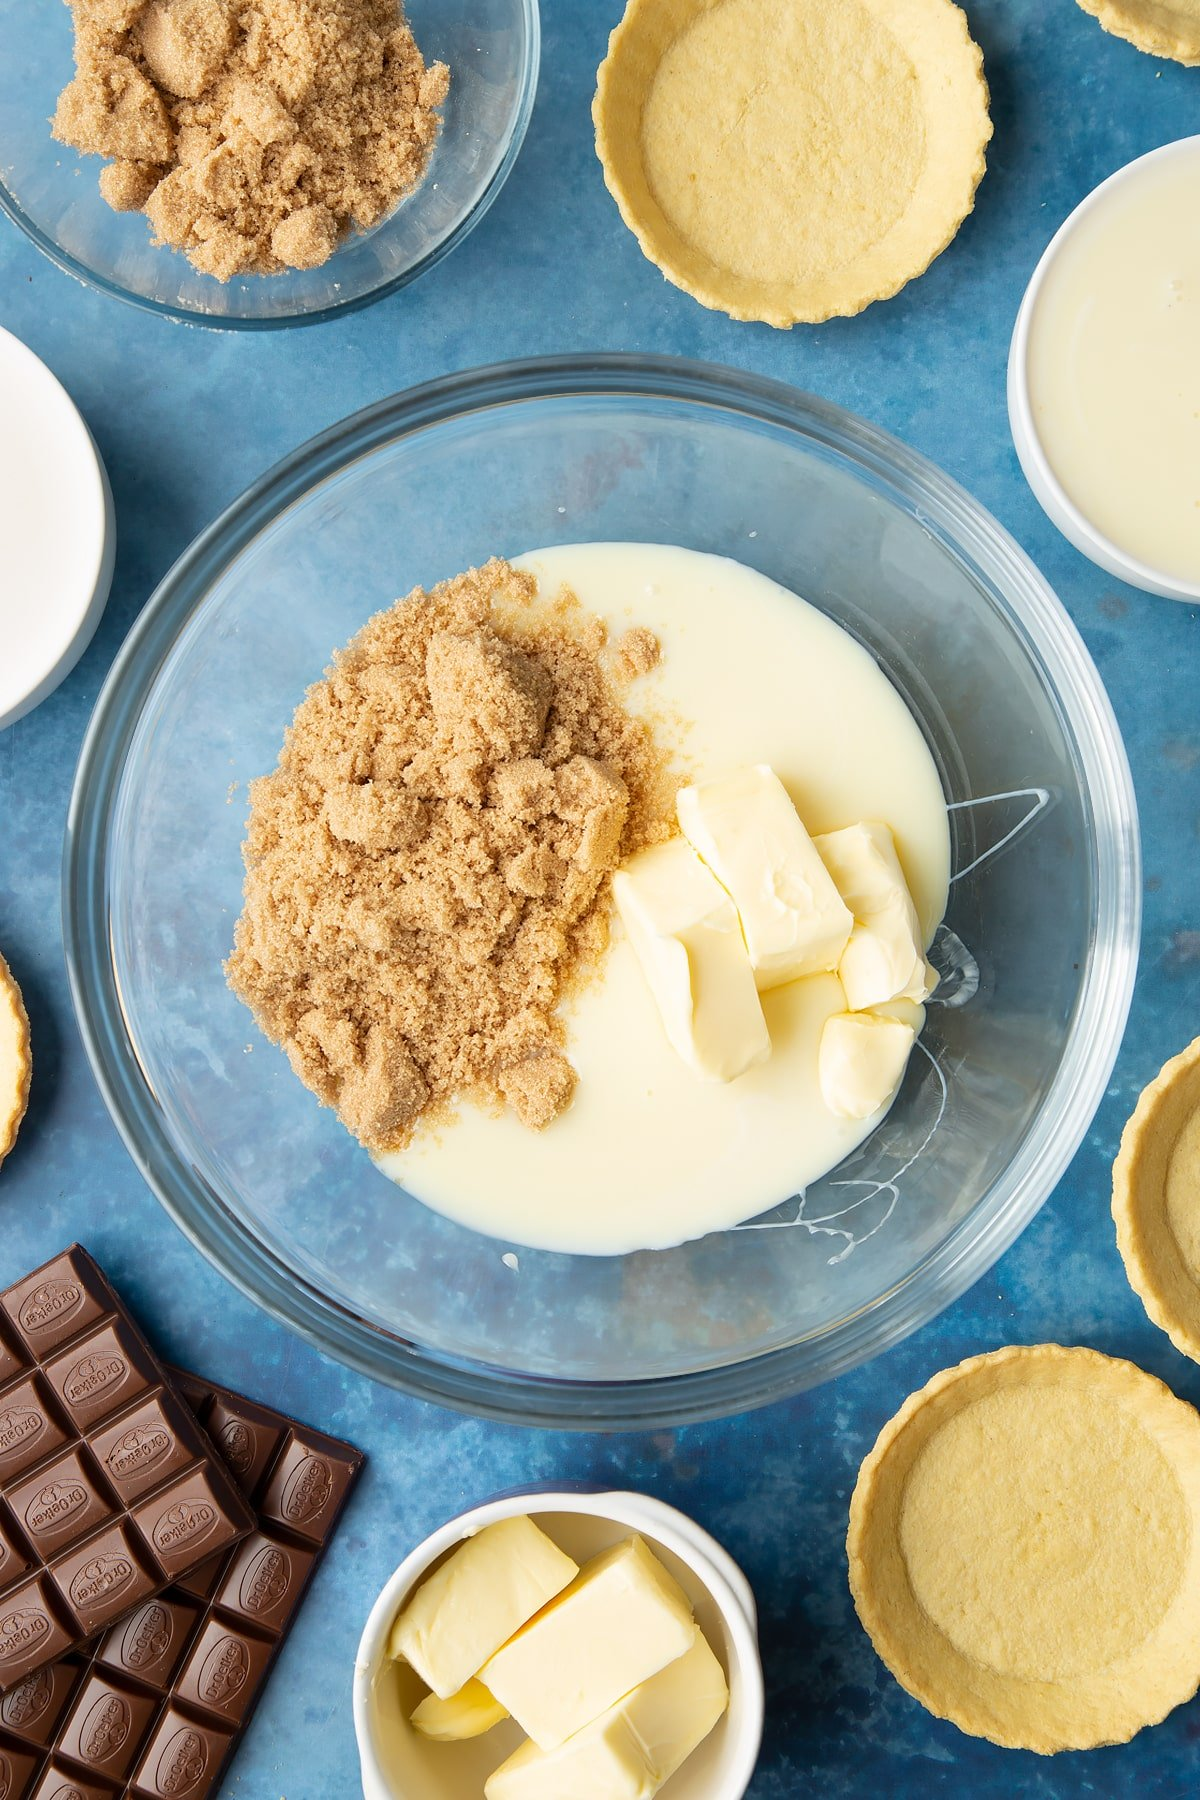 Light brown sugar, butter and condensed milk in a large mixing bowl. Ingredients to make mini chocolate tarts surround the bowl.